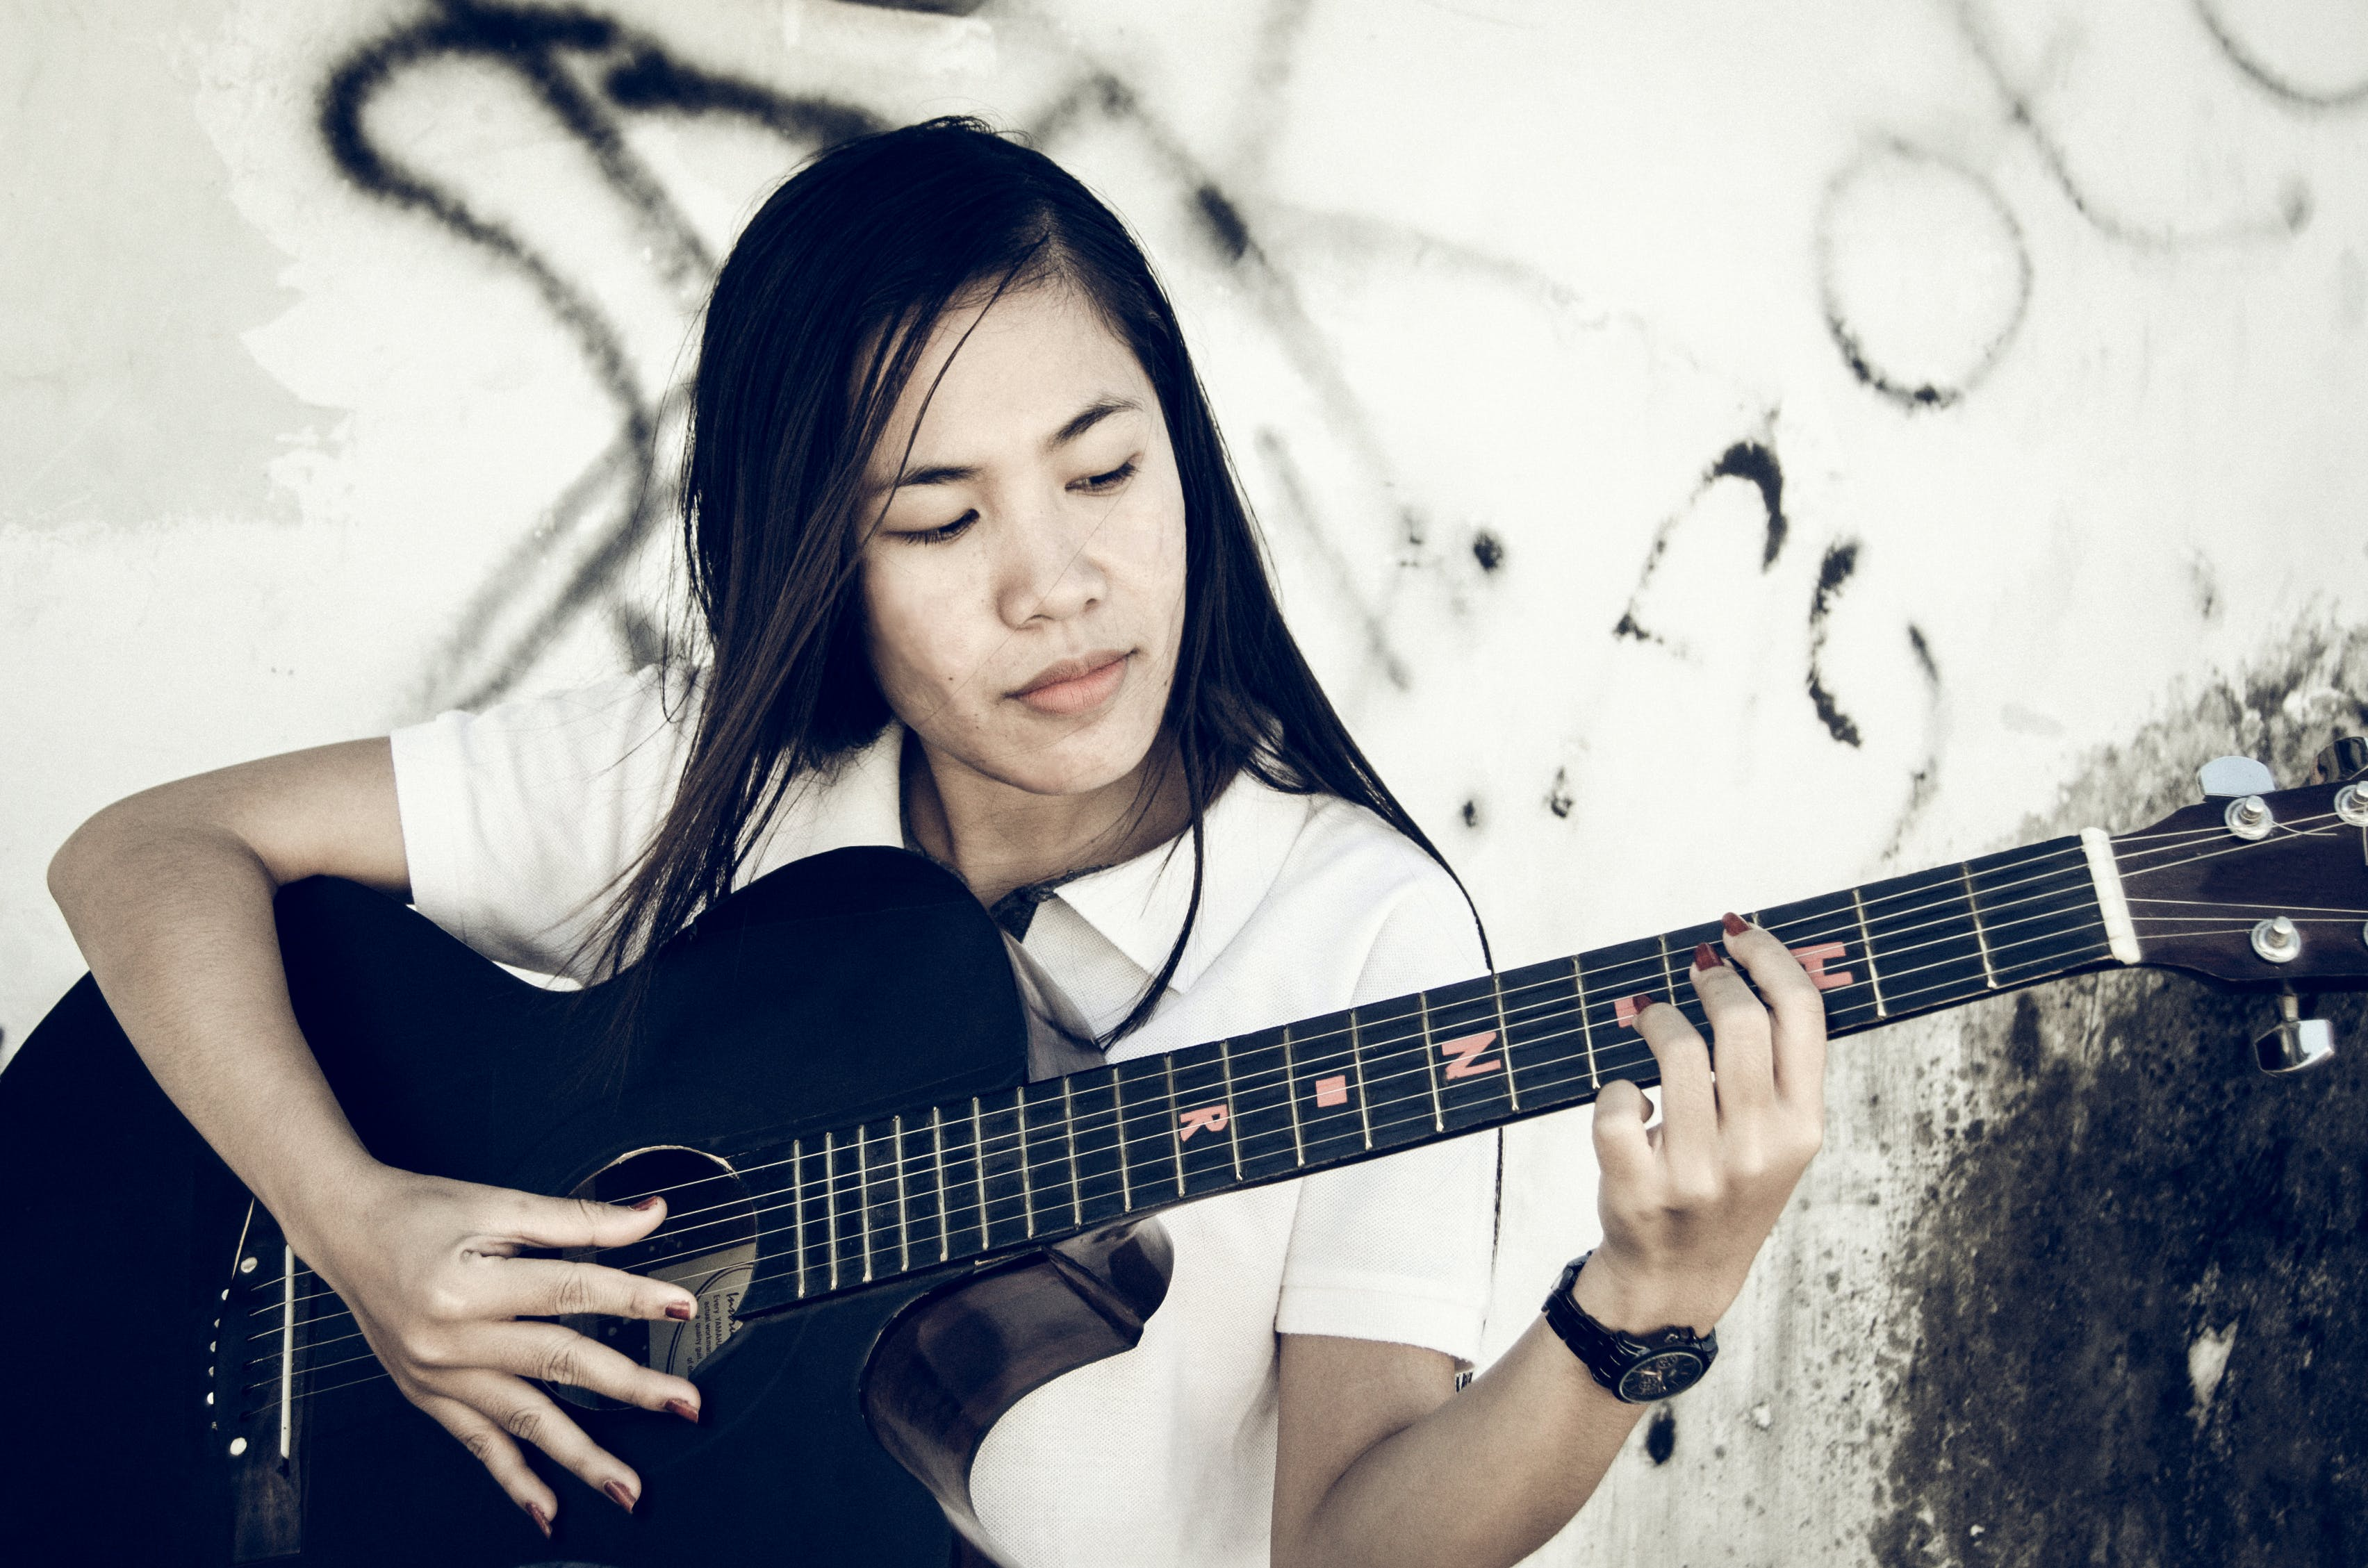 Free stock photo of acoustic guitar, asian girl, asian women, black